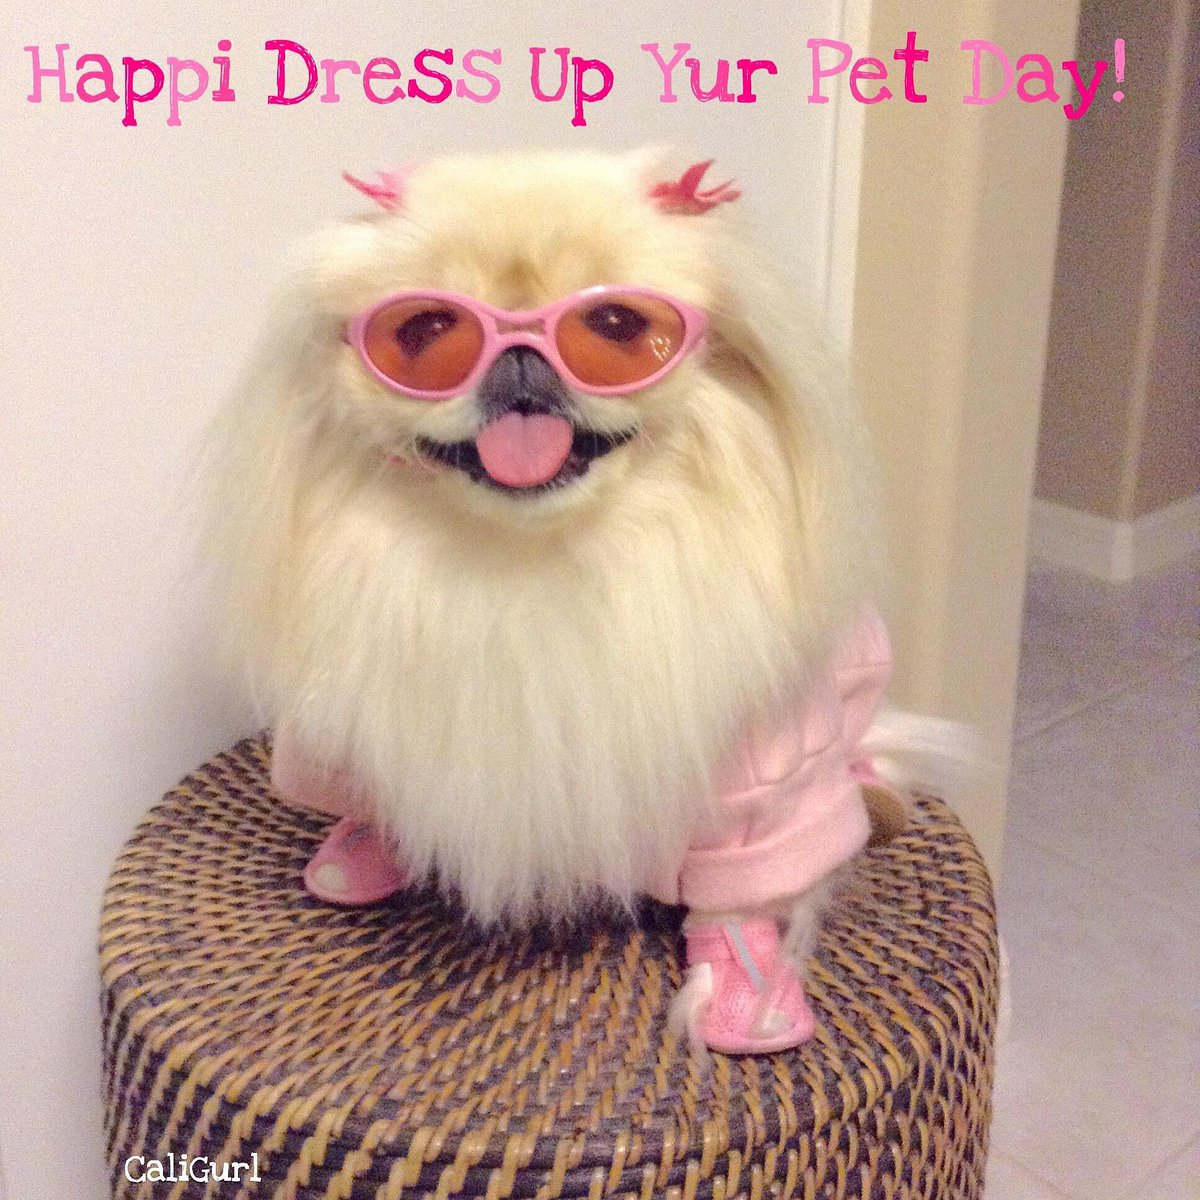 Most ridickculus onsombo I hab eber worn! 😆  #TheDayDaddyDressedMe today iz #DressUpYourPetDay 🐶 Do you have any cute pictures of your dog in dress up or costume? Post 😉 #CaliGurl #happydog #smilingdog #nationaldressupyourpetday #doggles #pink #doginclothes #dogsinglasses